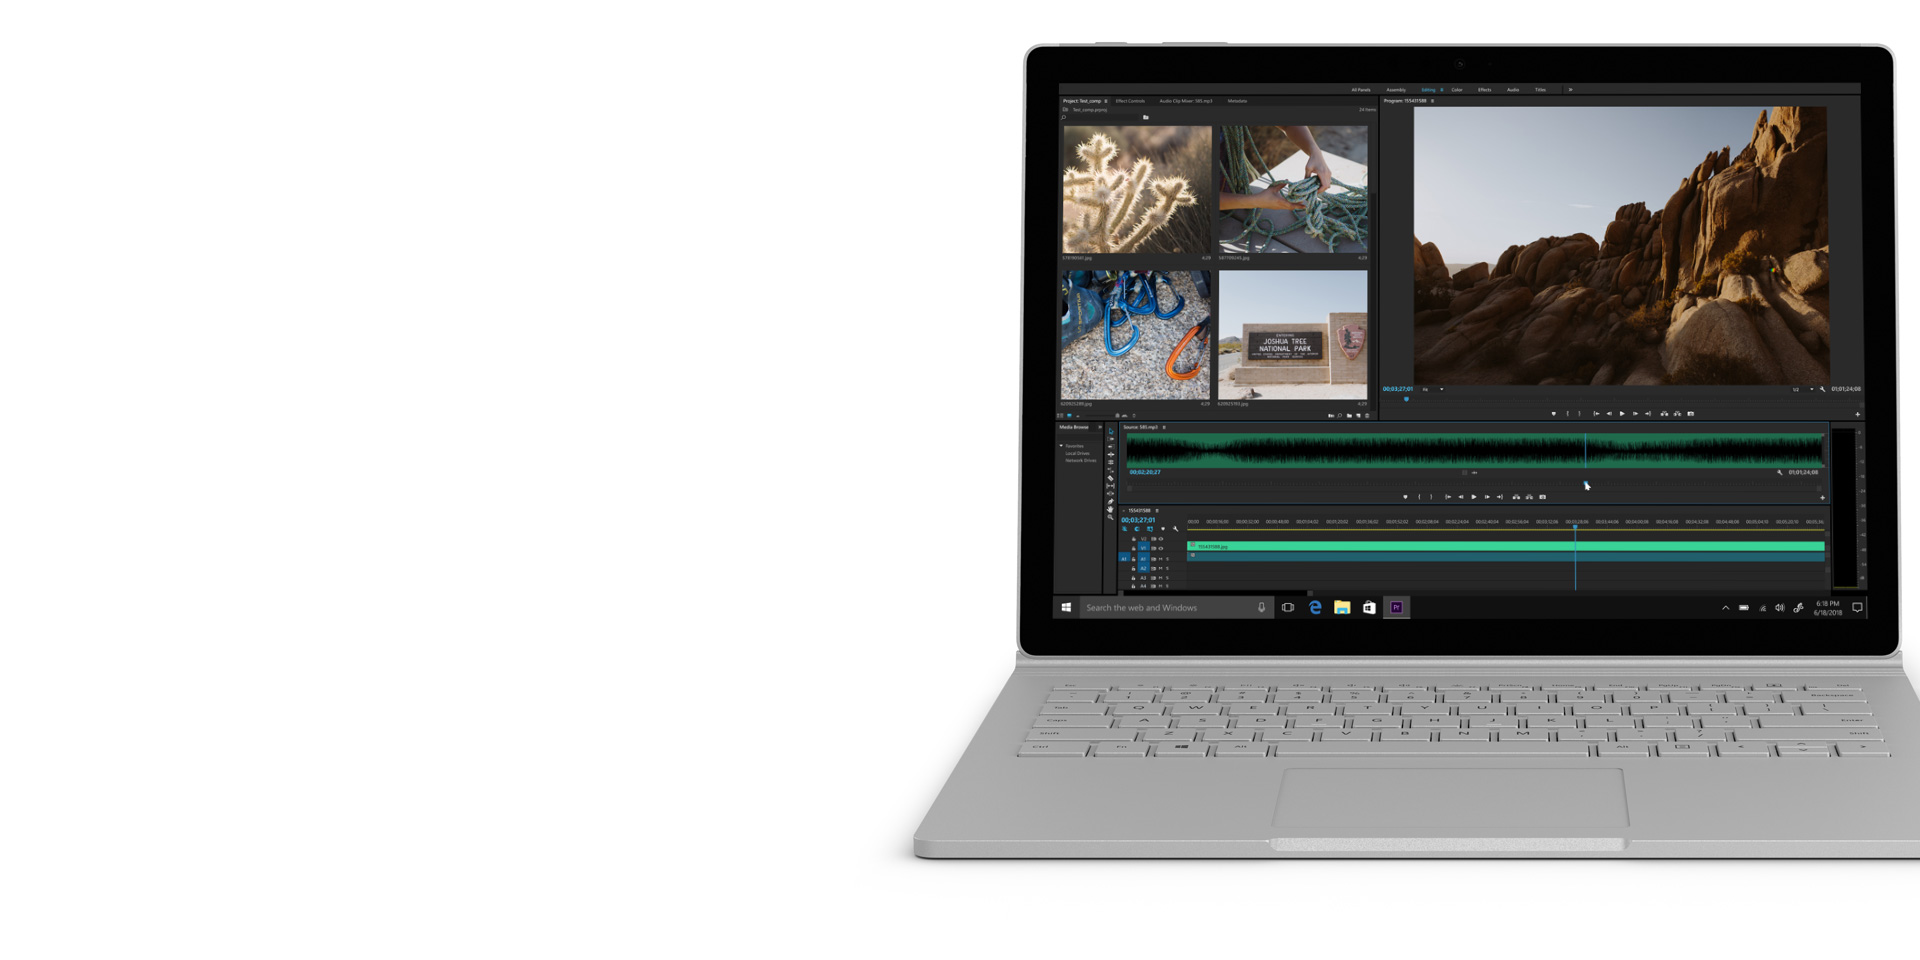 Adobe Premiere Pro sullo schermo di un dispositivo Surface Book 2